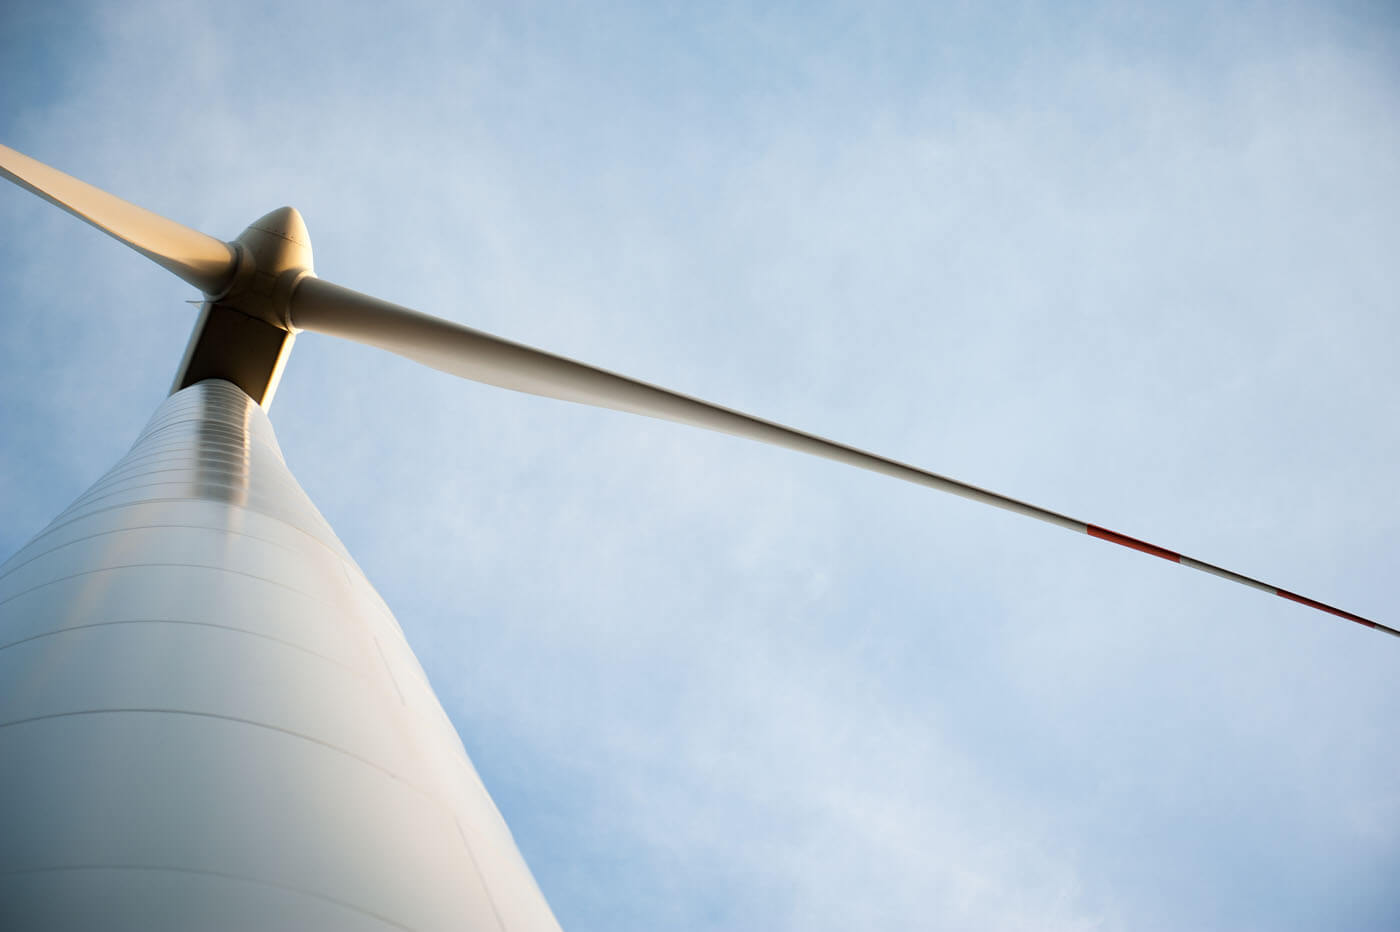 Looking up at a wind turbine against the sky.